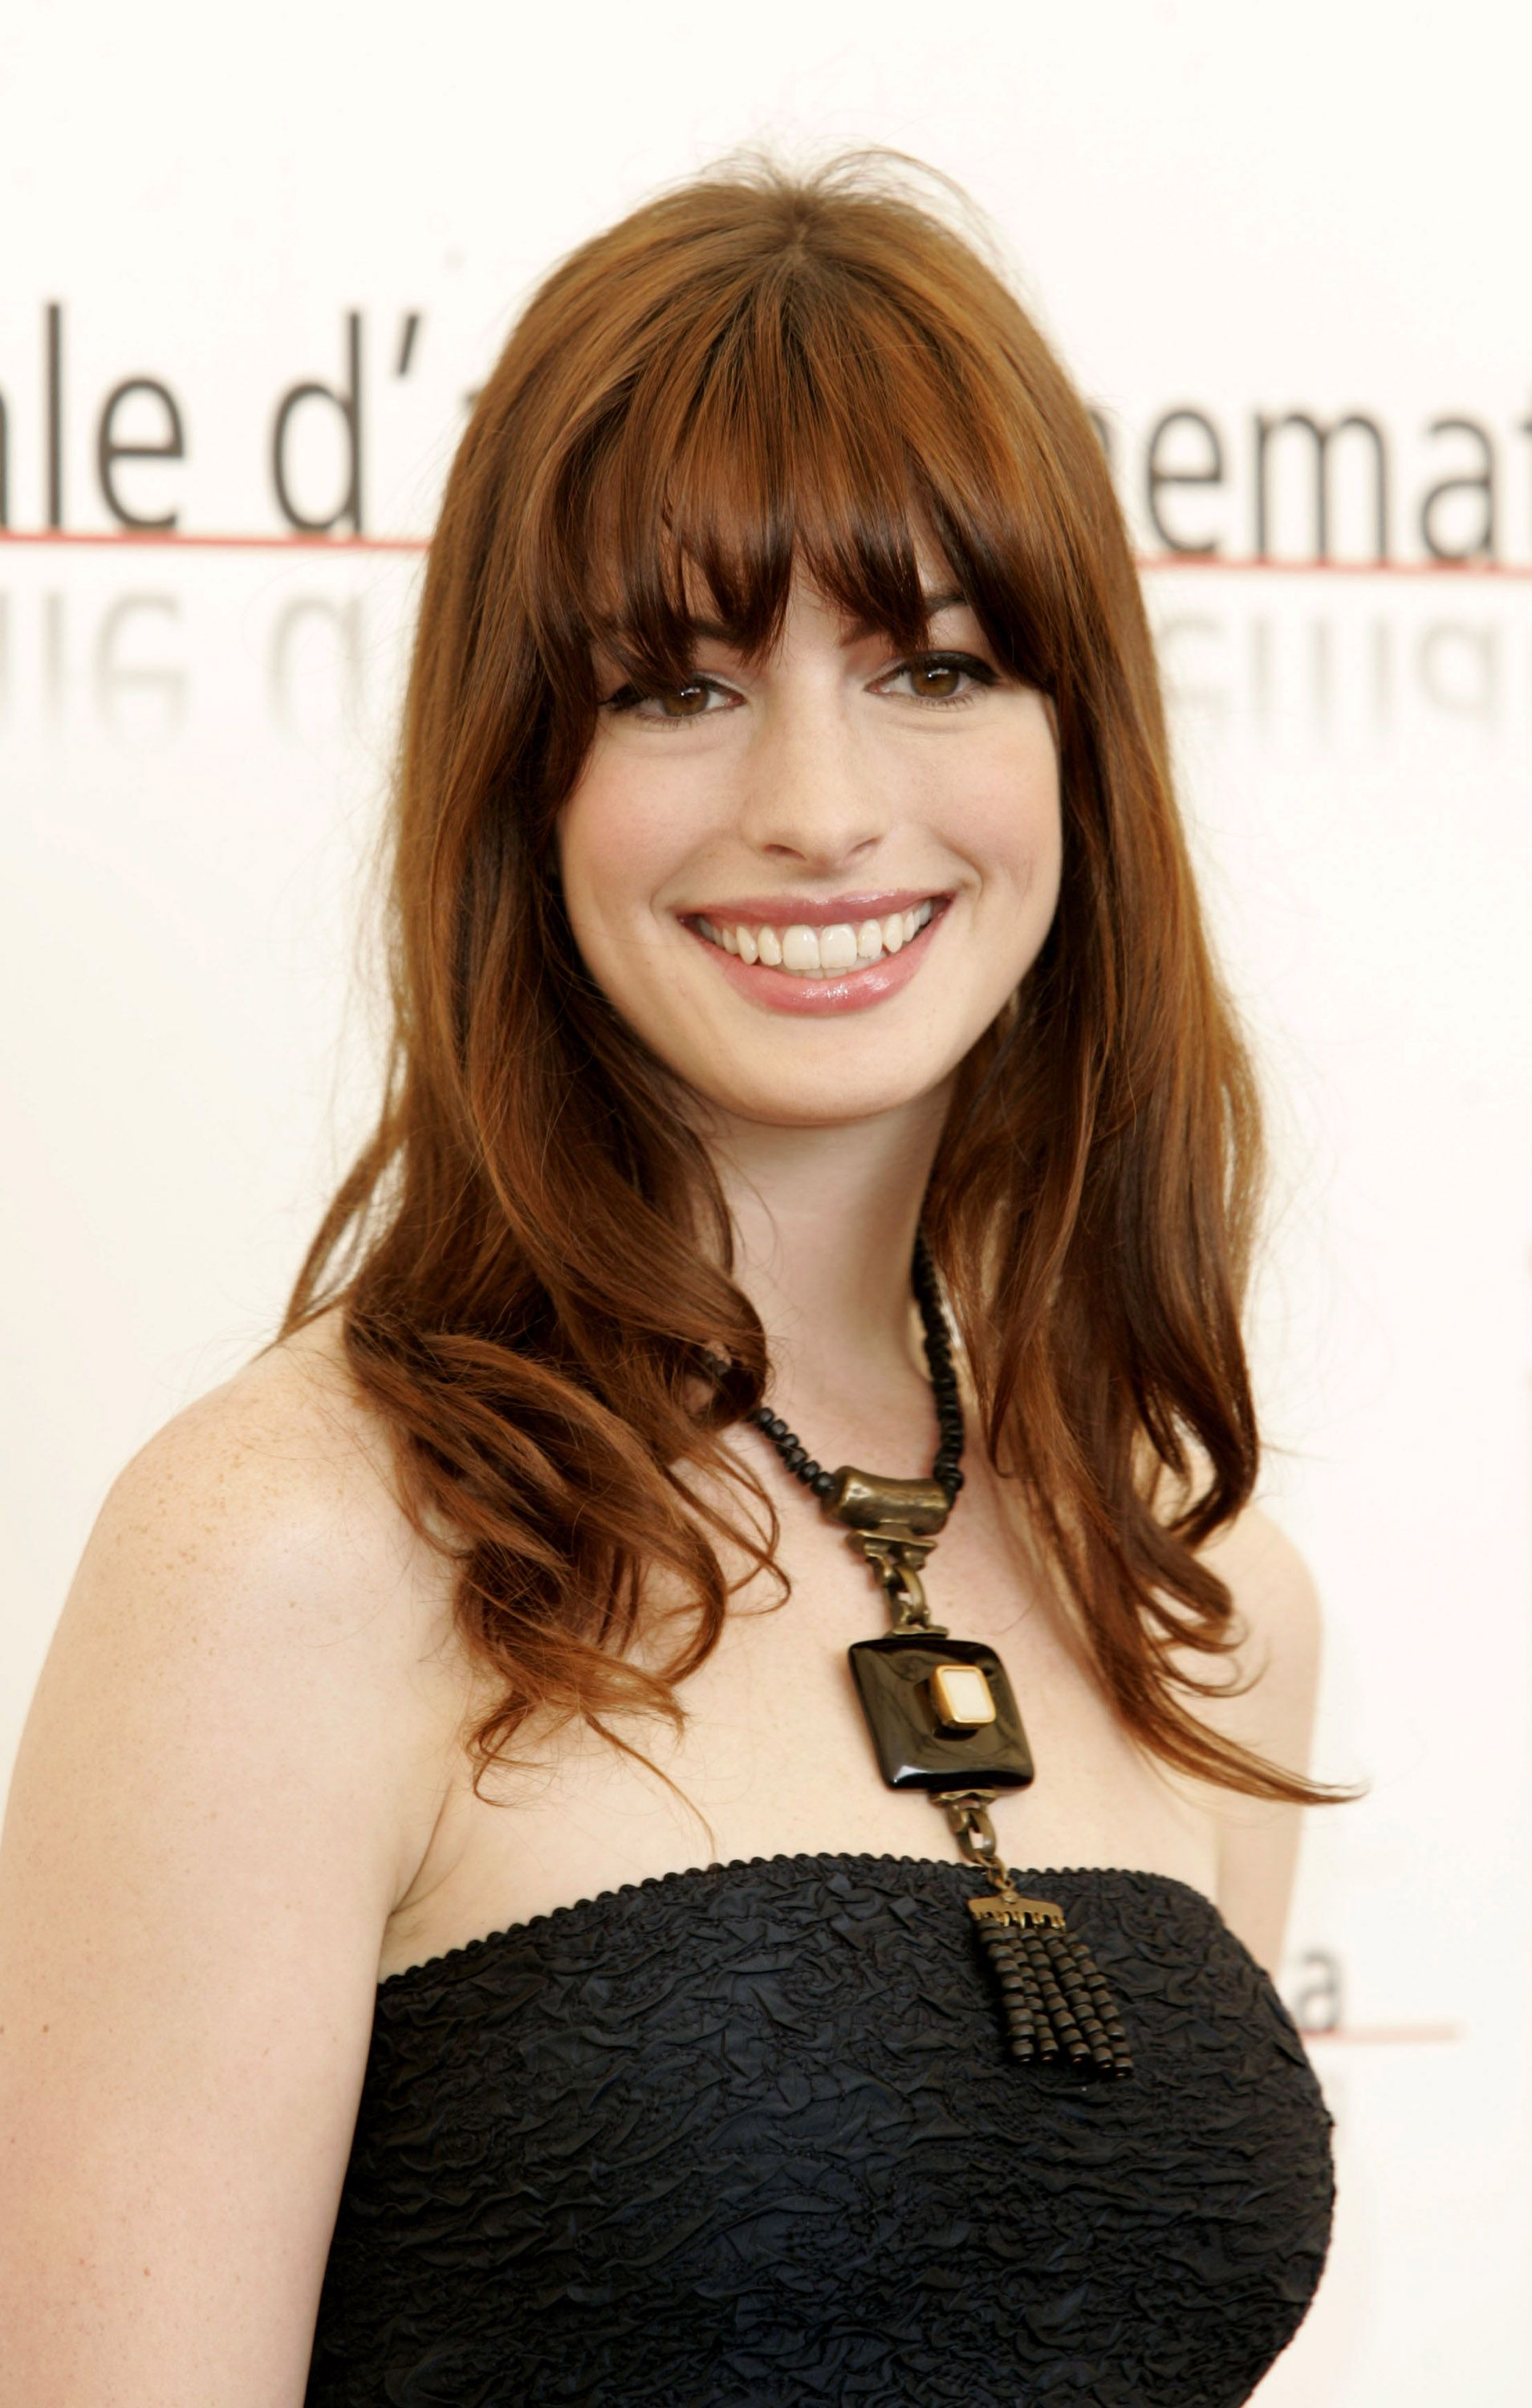 Hacked Anne Hathaway naked (13 photos), Tits, Bikini, Twitter, cleavage 2019